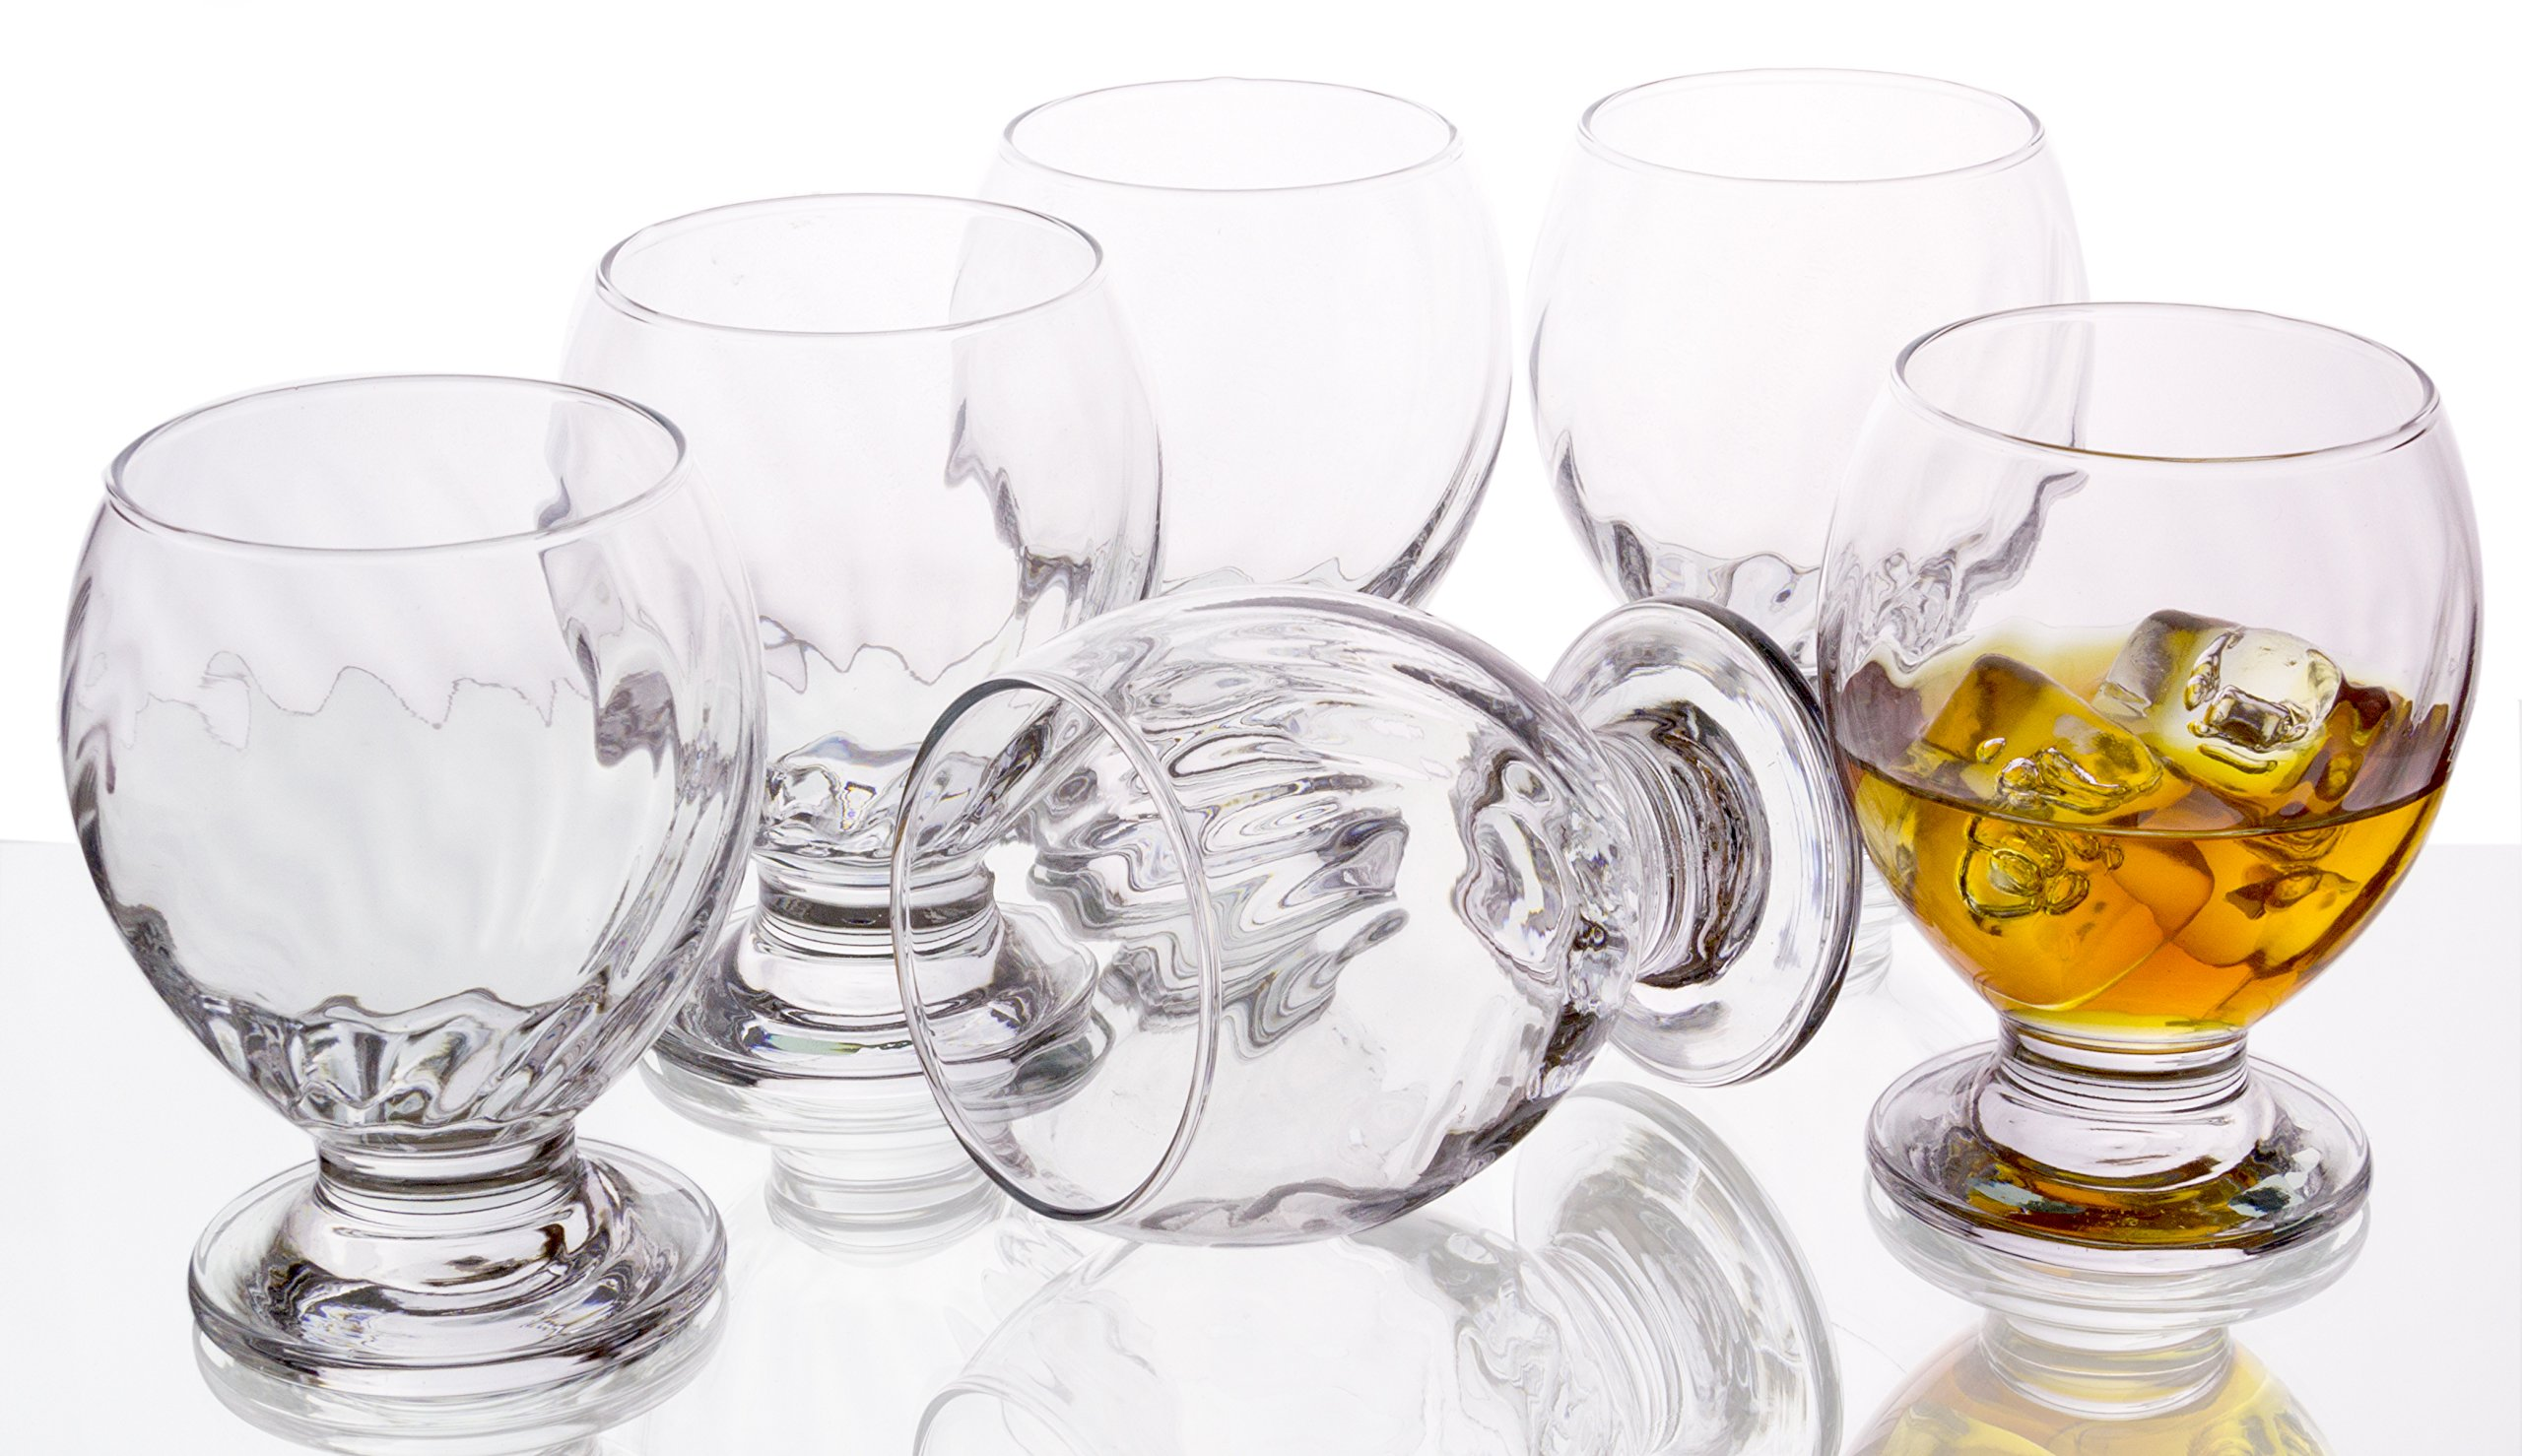 Orion Clear Footed Cognac and Whiskey Goblets, Vertical Curved Lines - Set of 6